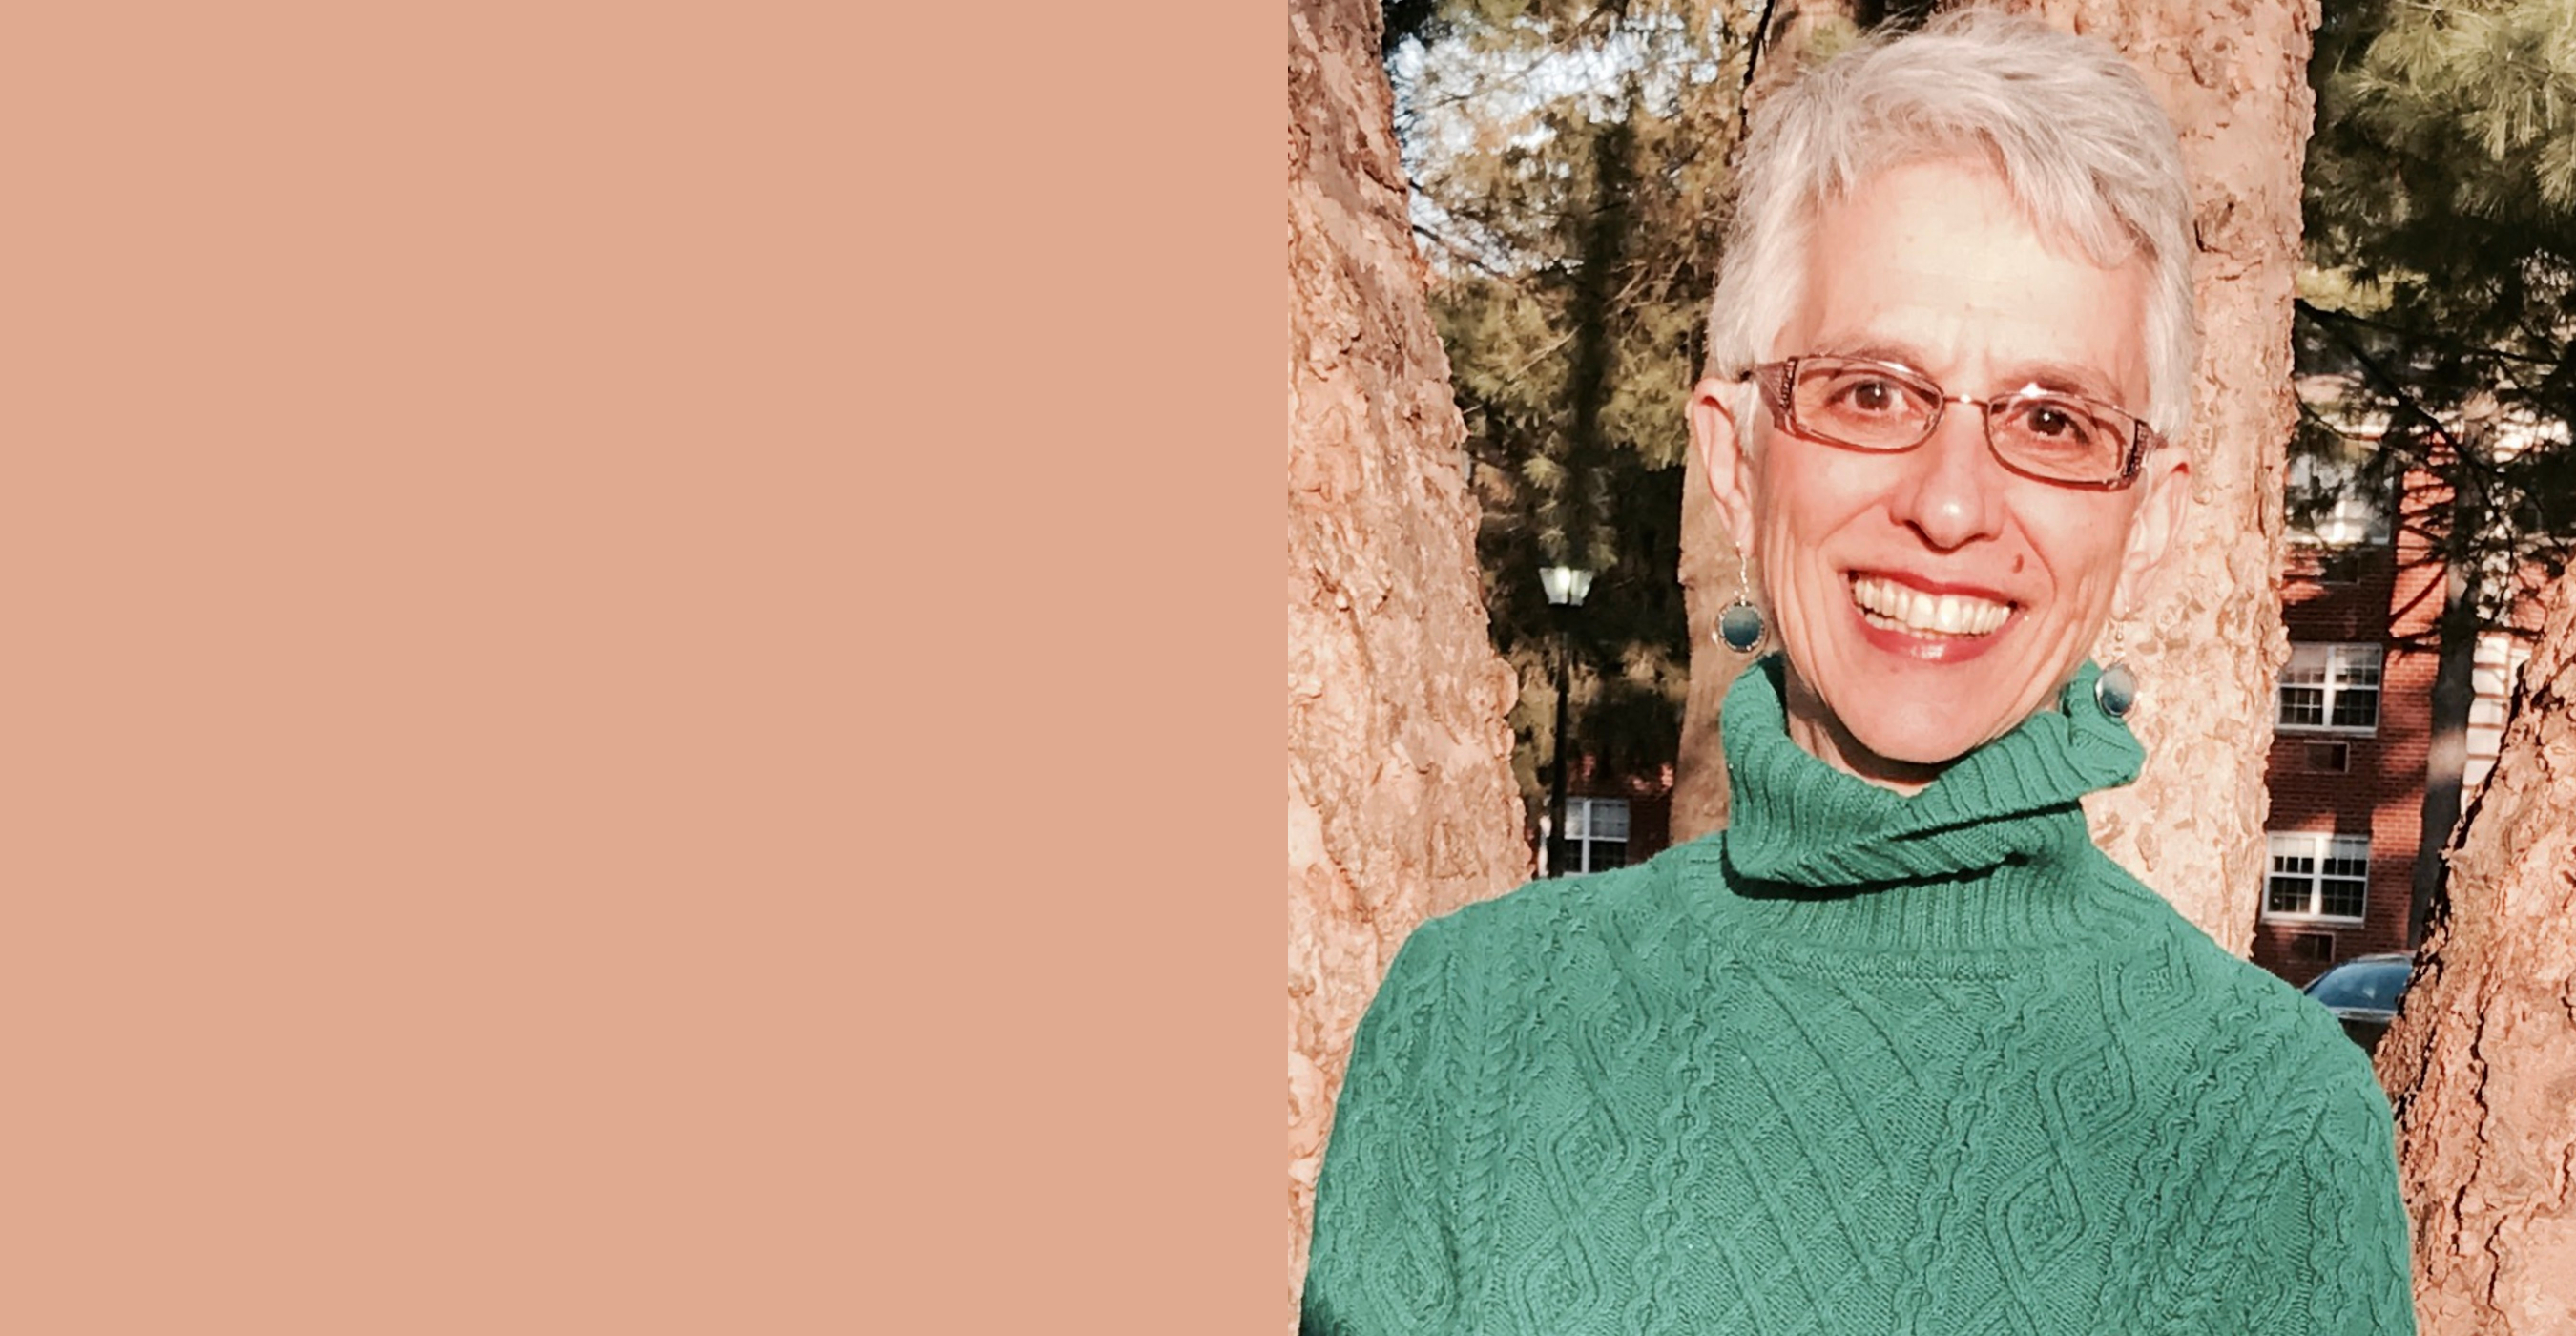 """<a href=""""https://www.beaconhebrewalliance.org/event/dialog-with-rabbi-sheila-peltz-weinberg.html""""                                     target=""""_blank"""">                                                                 <span class=""""slider_title"""">                                     Dialog with Rabbi Sheila Peltz Weinberg                                </span>                                                                 </a>                                                                                                                                                                                       <span class=""""slider_description"""">Thursday, November 21st, 6:00 PM - 8:00 PM  Join us for a very special evening with Rabbi Sheila Peltz Weinberg, one of the true pioneers of contemporary Jewish meditation practice. Register here.</span>"""